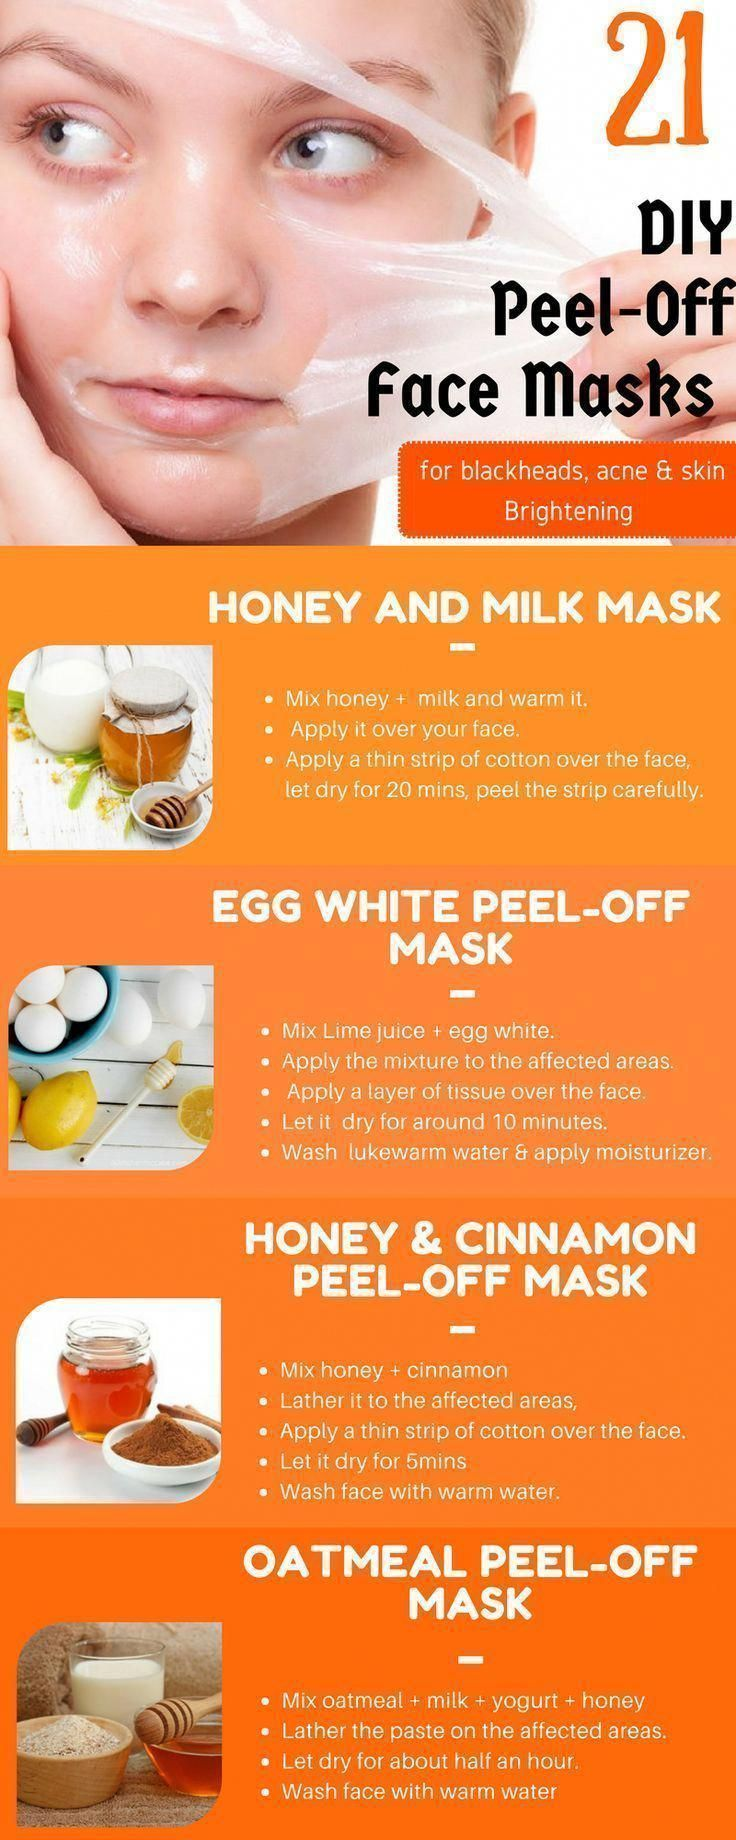 In Home Spa In 2020 Homemade Facial Mask Diy Face Mask Peel Face Mask For Blackheads